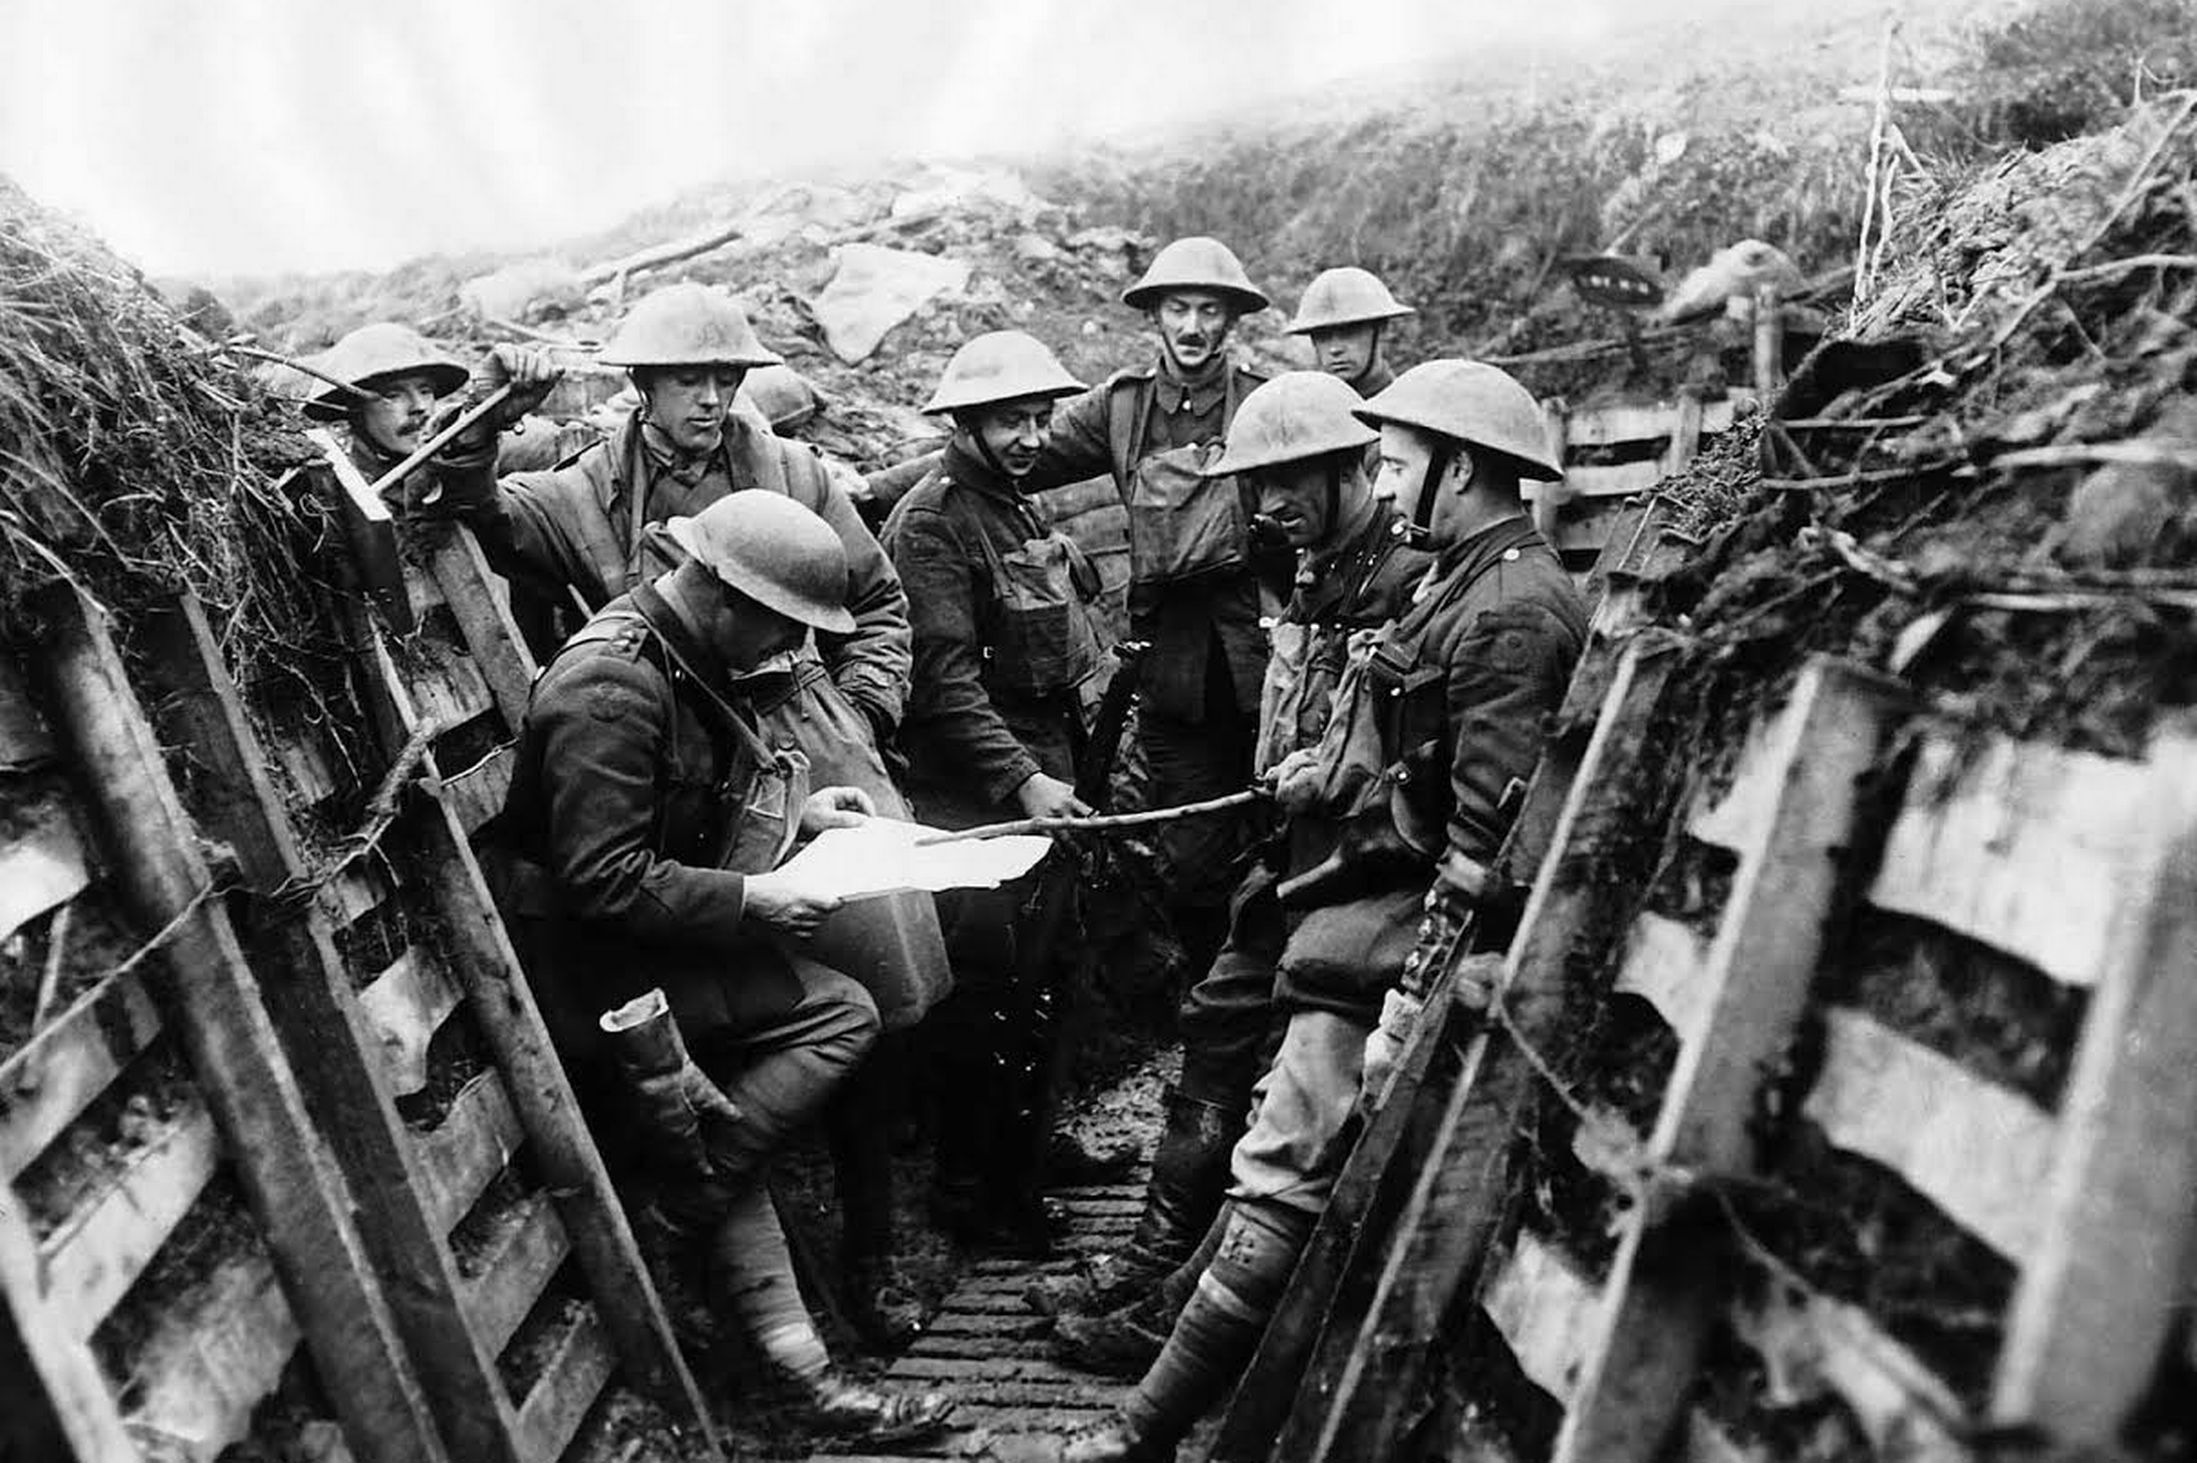 The Trenches Wwi British Army Officer And Men